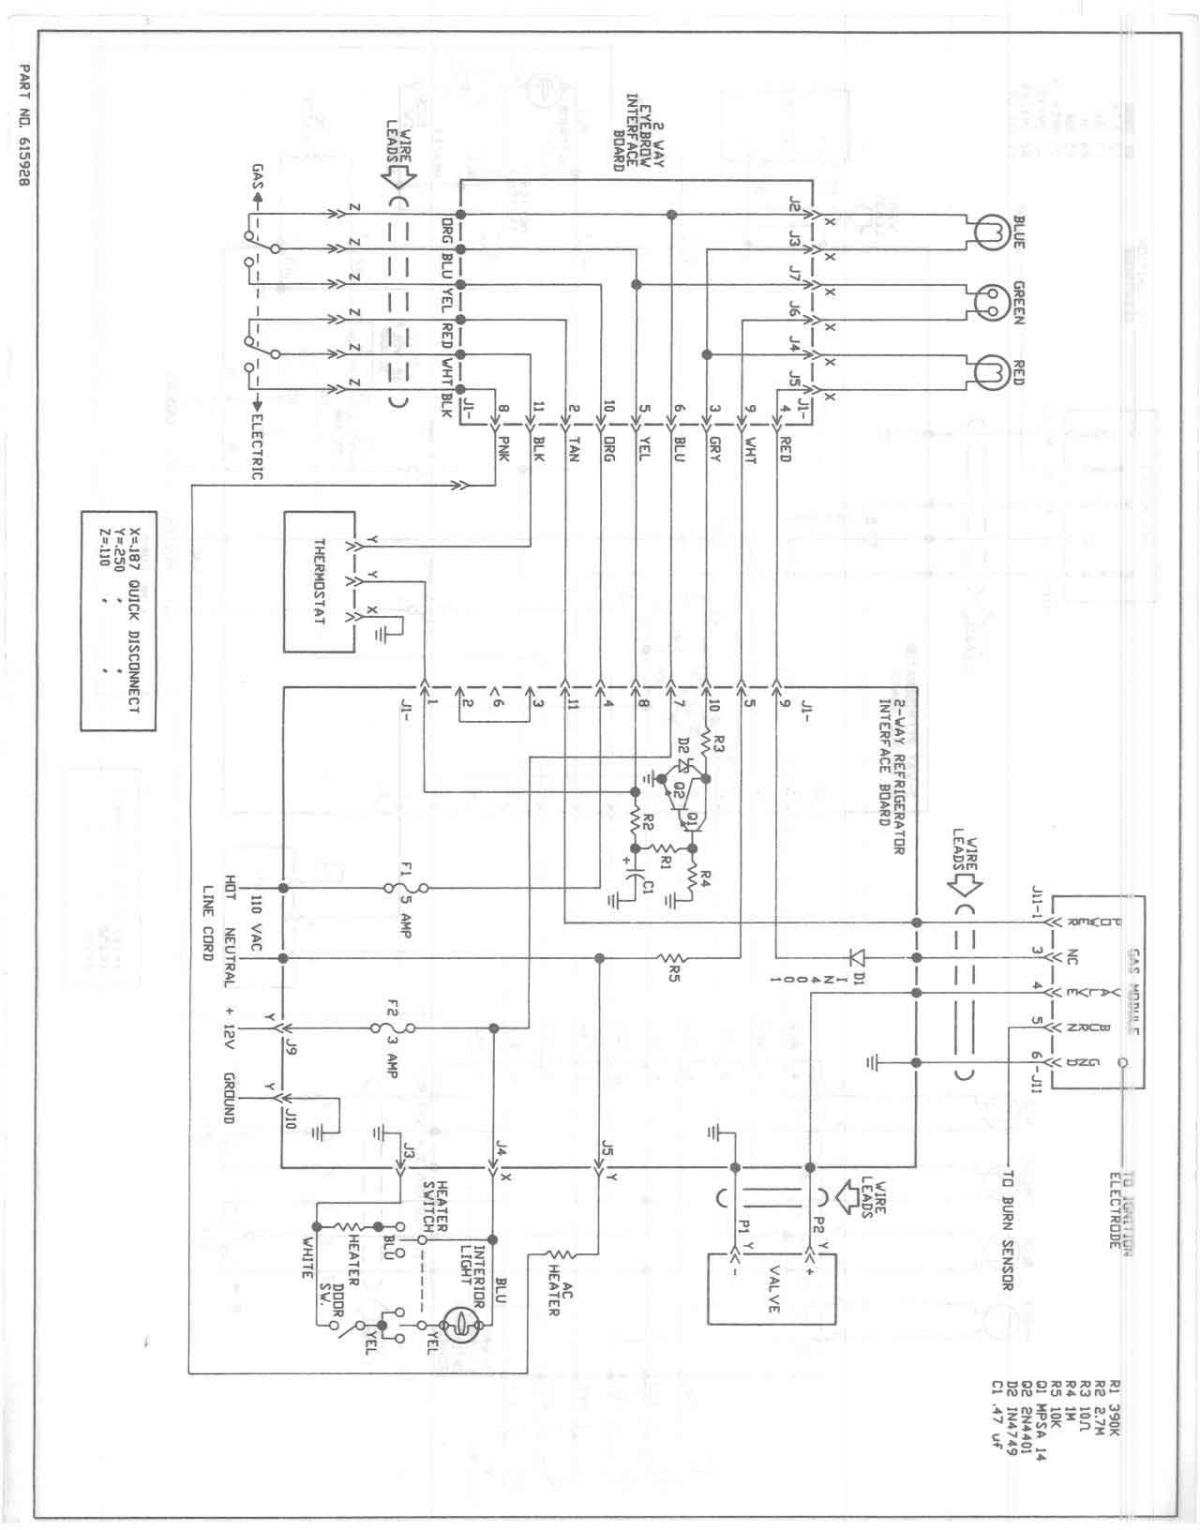 dometic refrigerator wiring diagram 2001 ford ranger fuel pump norcold rv 12